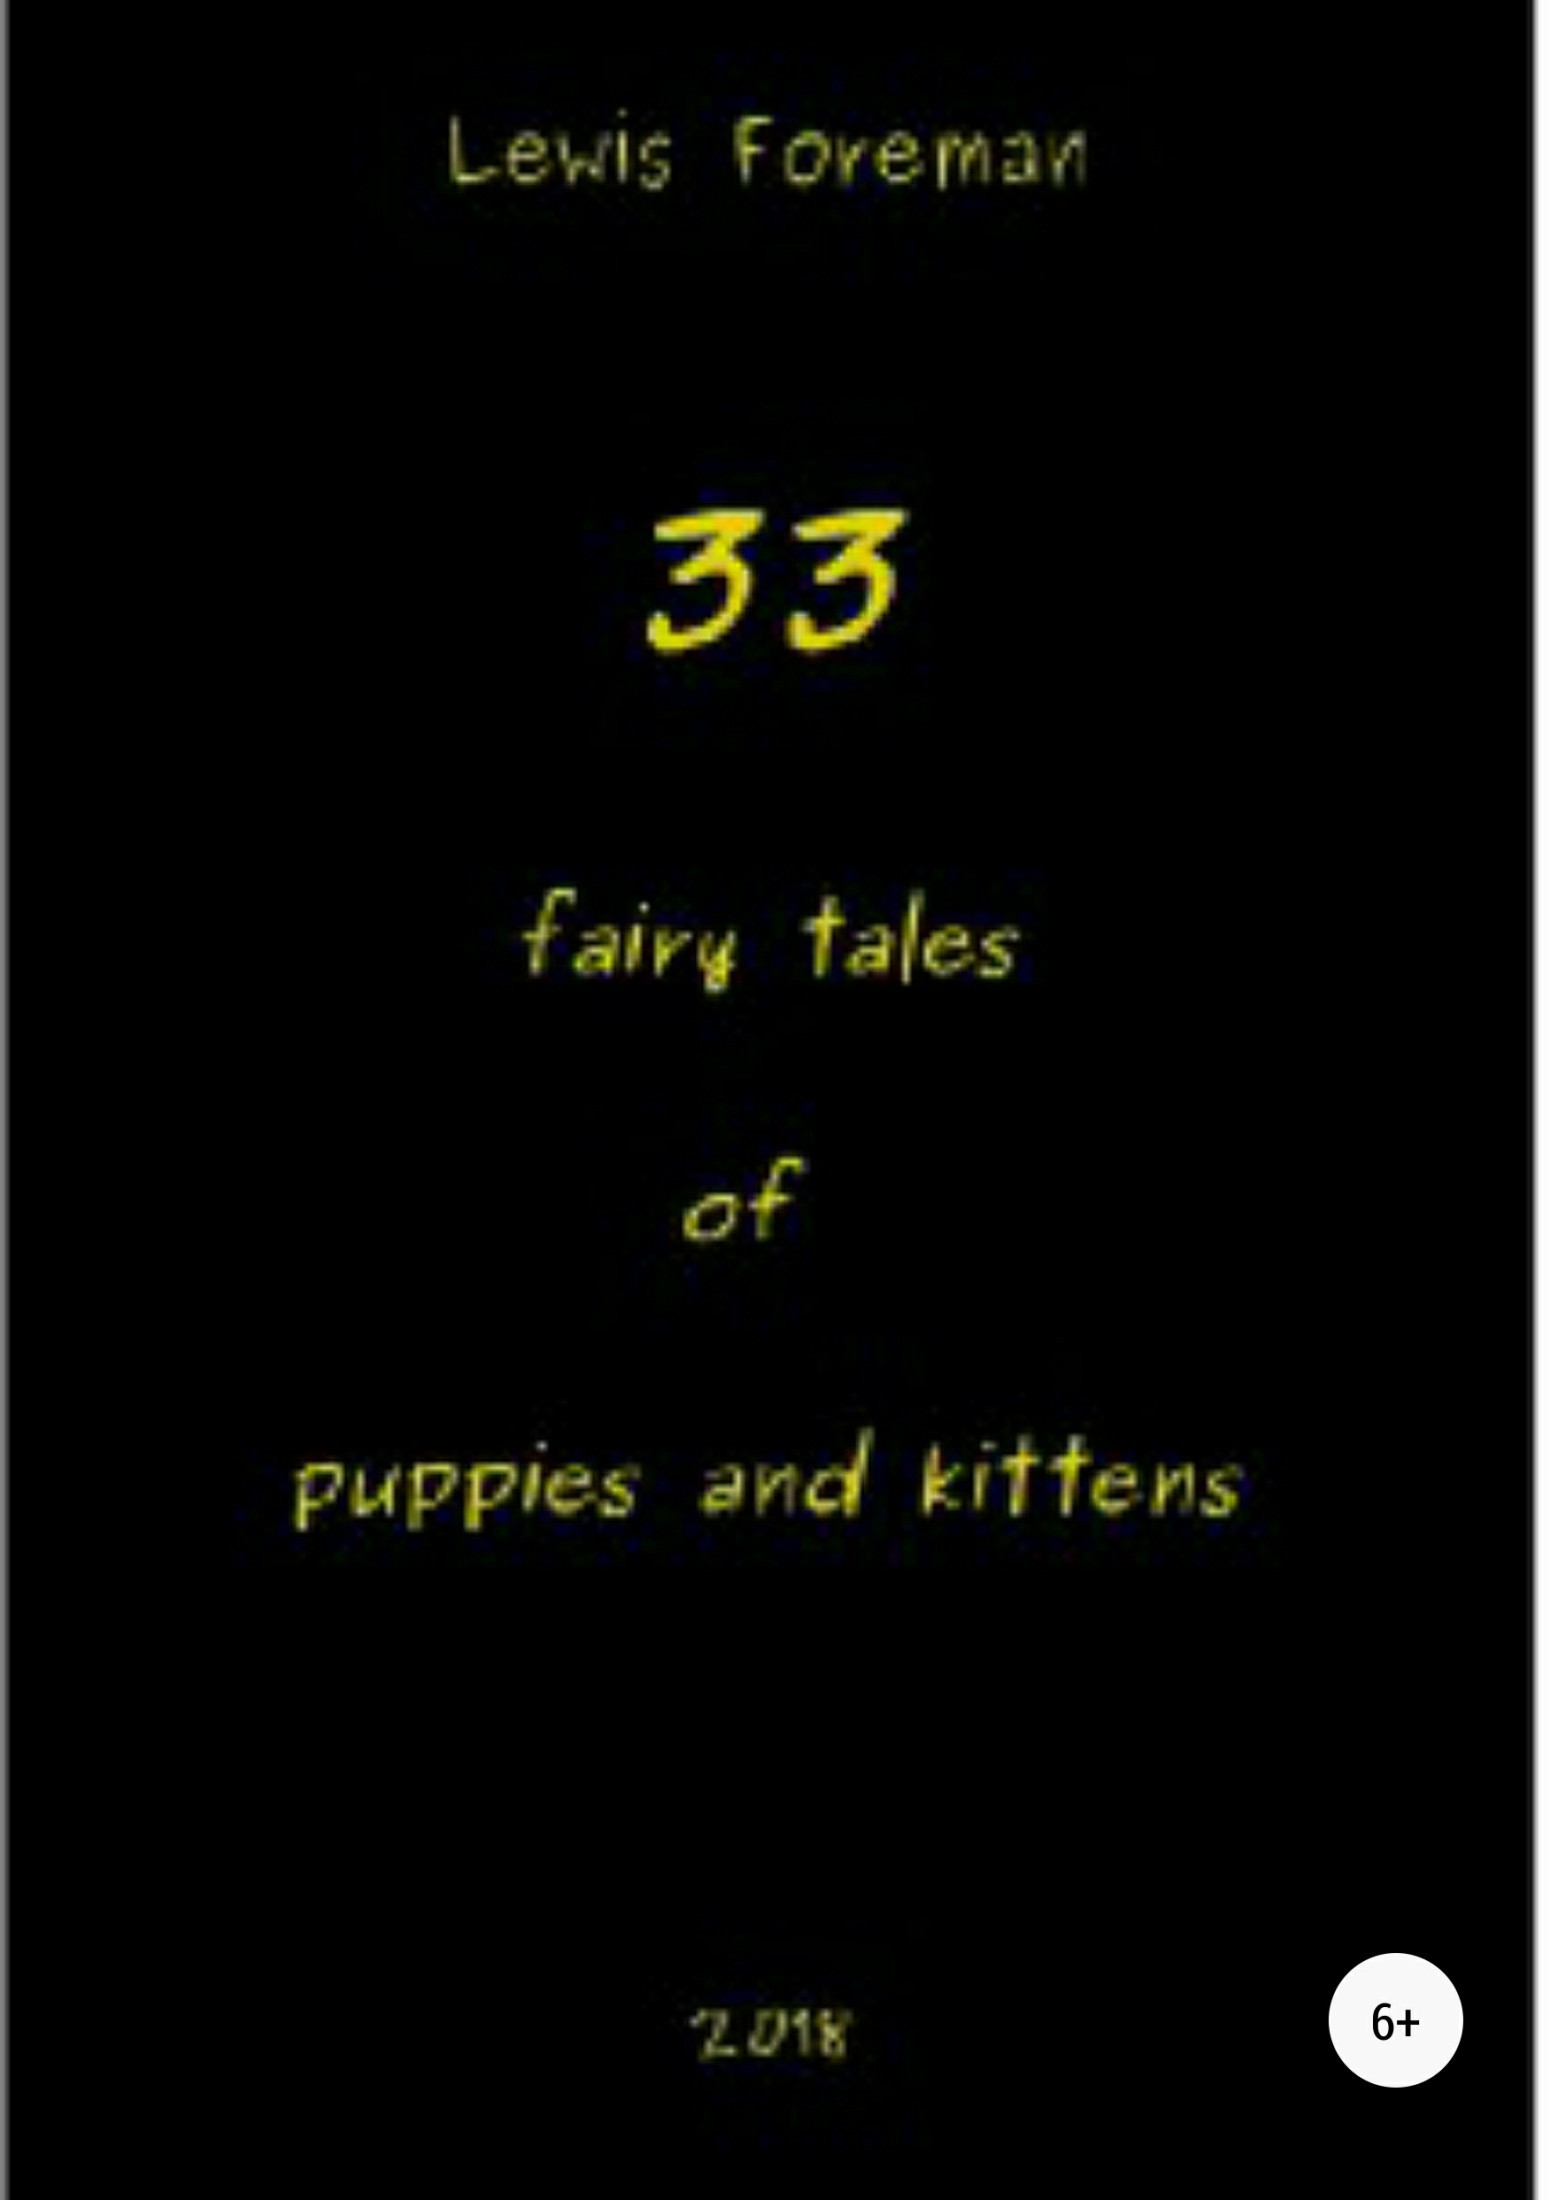 Lewis Foreman - 33 fairy tales of puppies and kittens